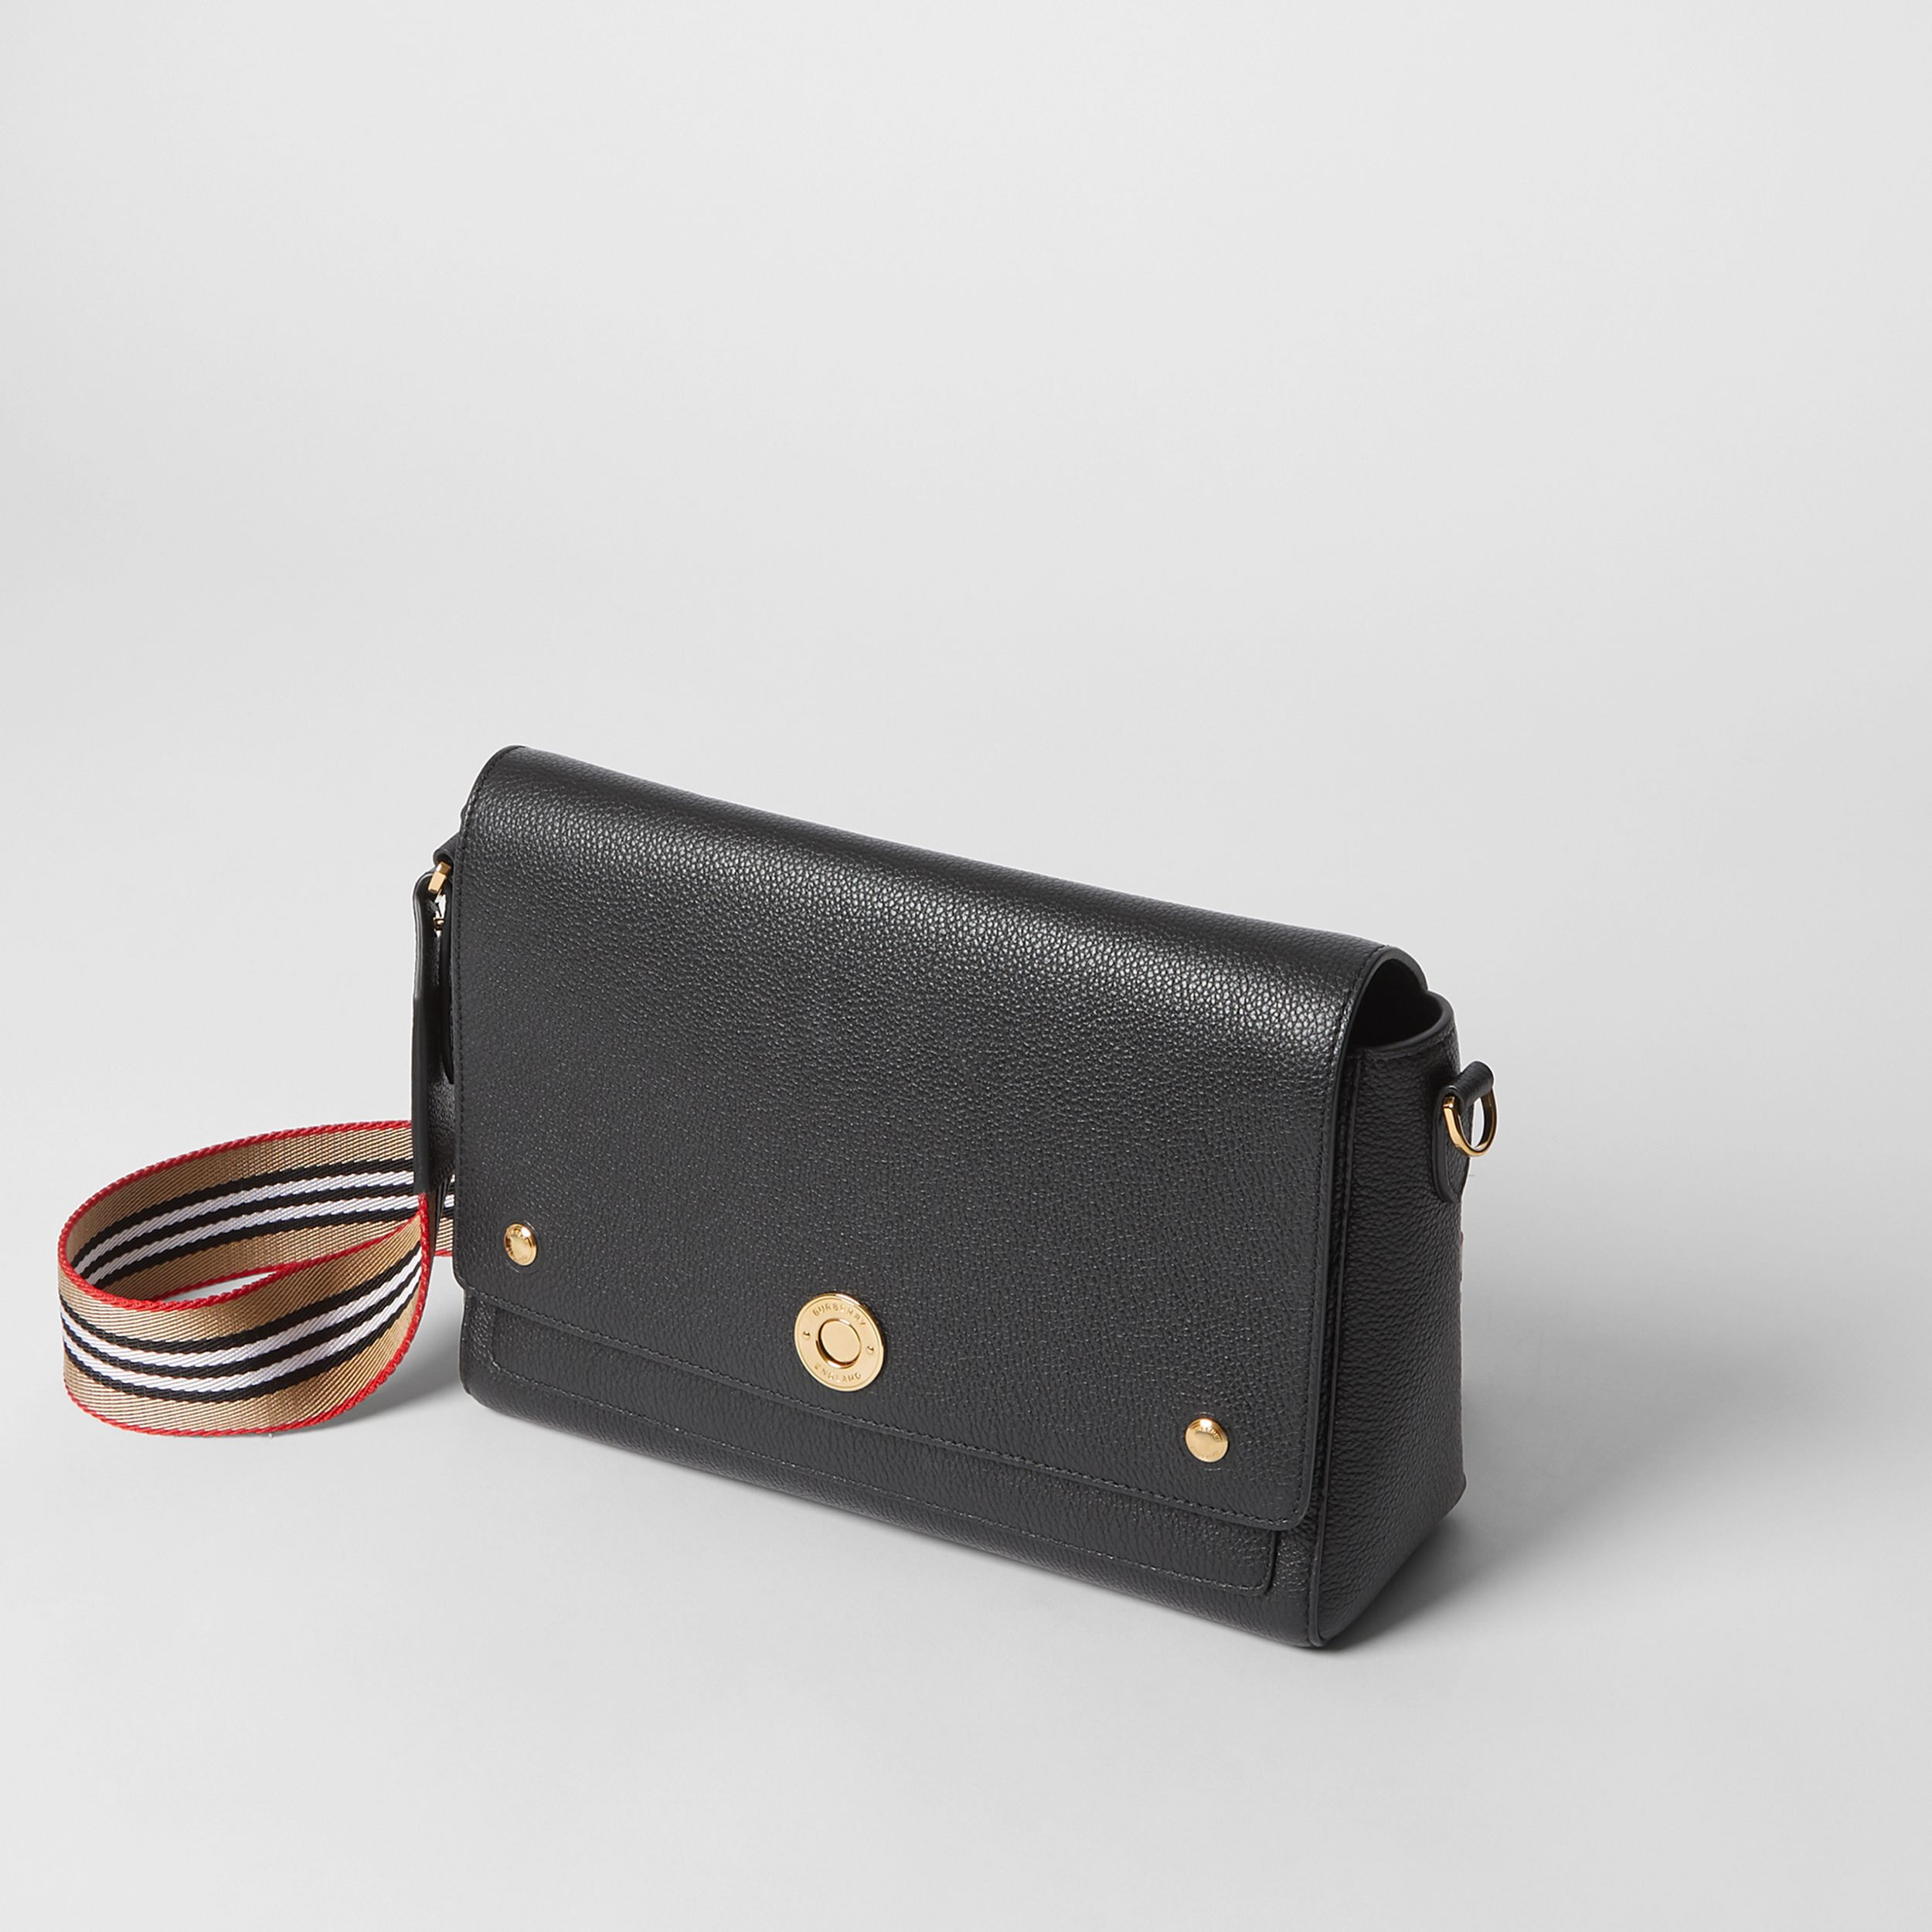 Grainy Leather Note Crossbody Bag in Black - Women | Burberry - 4